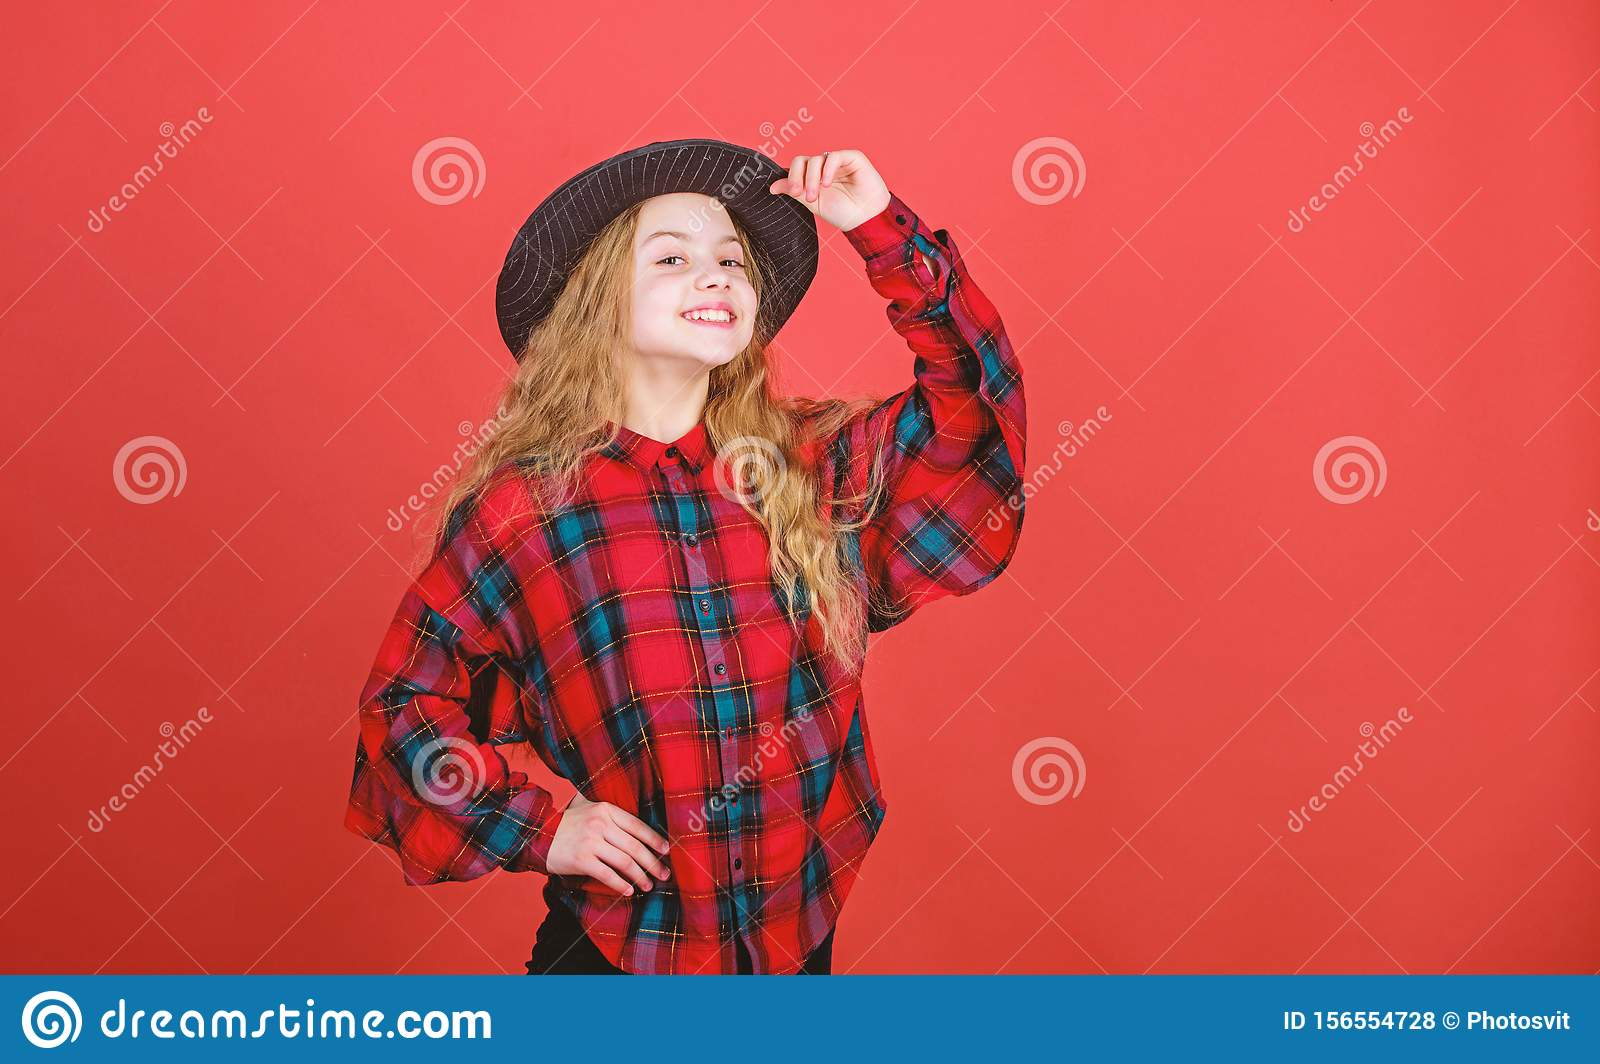 Looking trendy. Little girl with long blond hair in fashion style. Cute little fashion model. Adorable girl with fashion